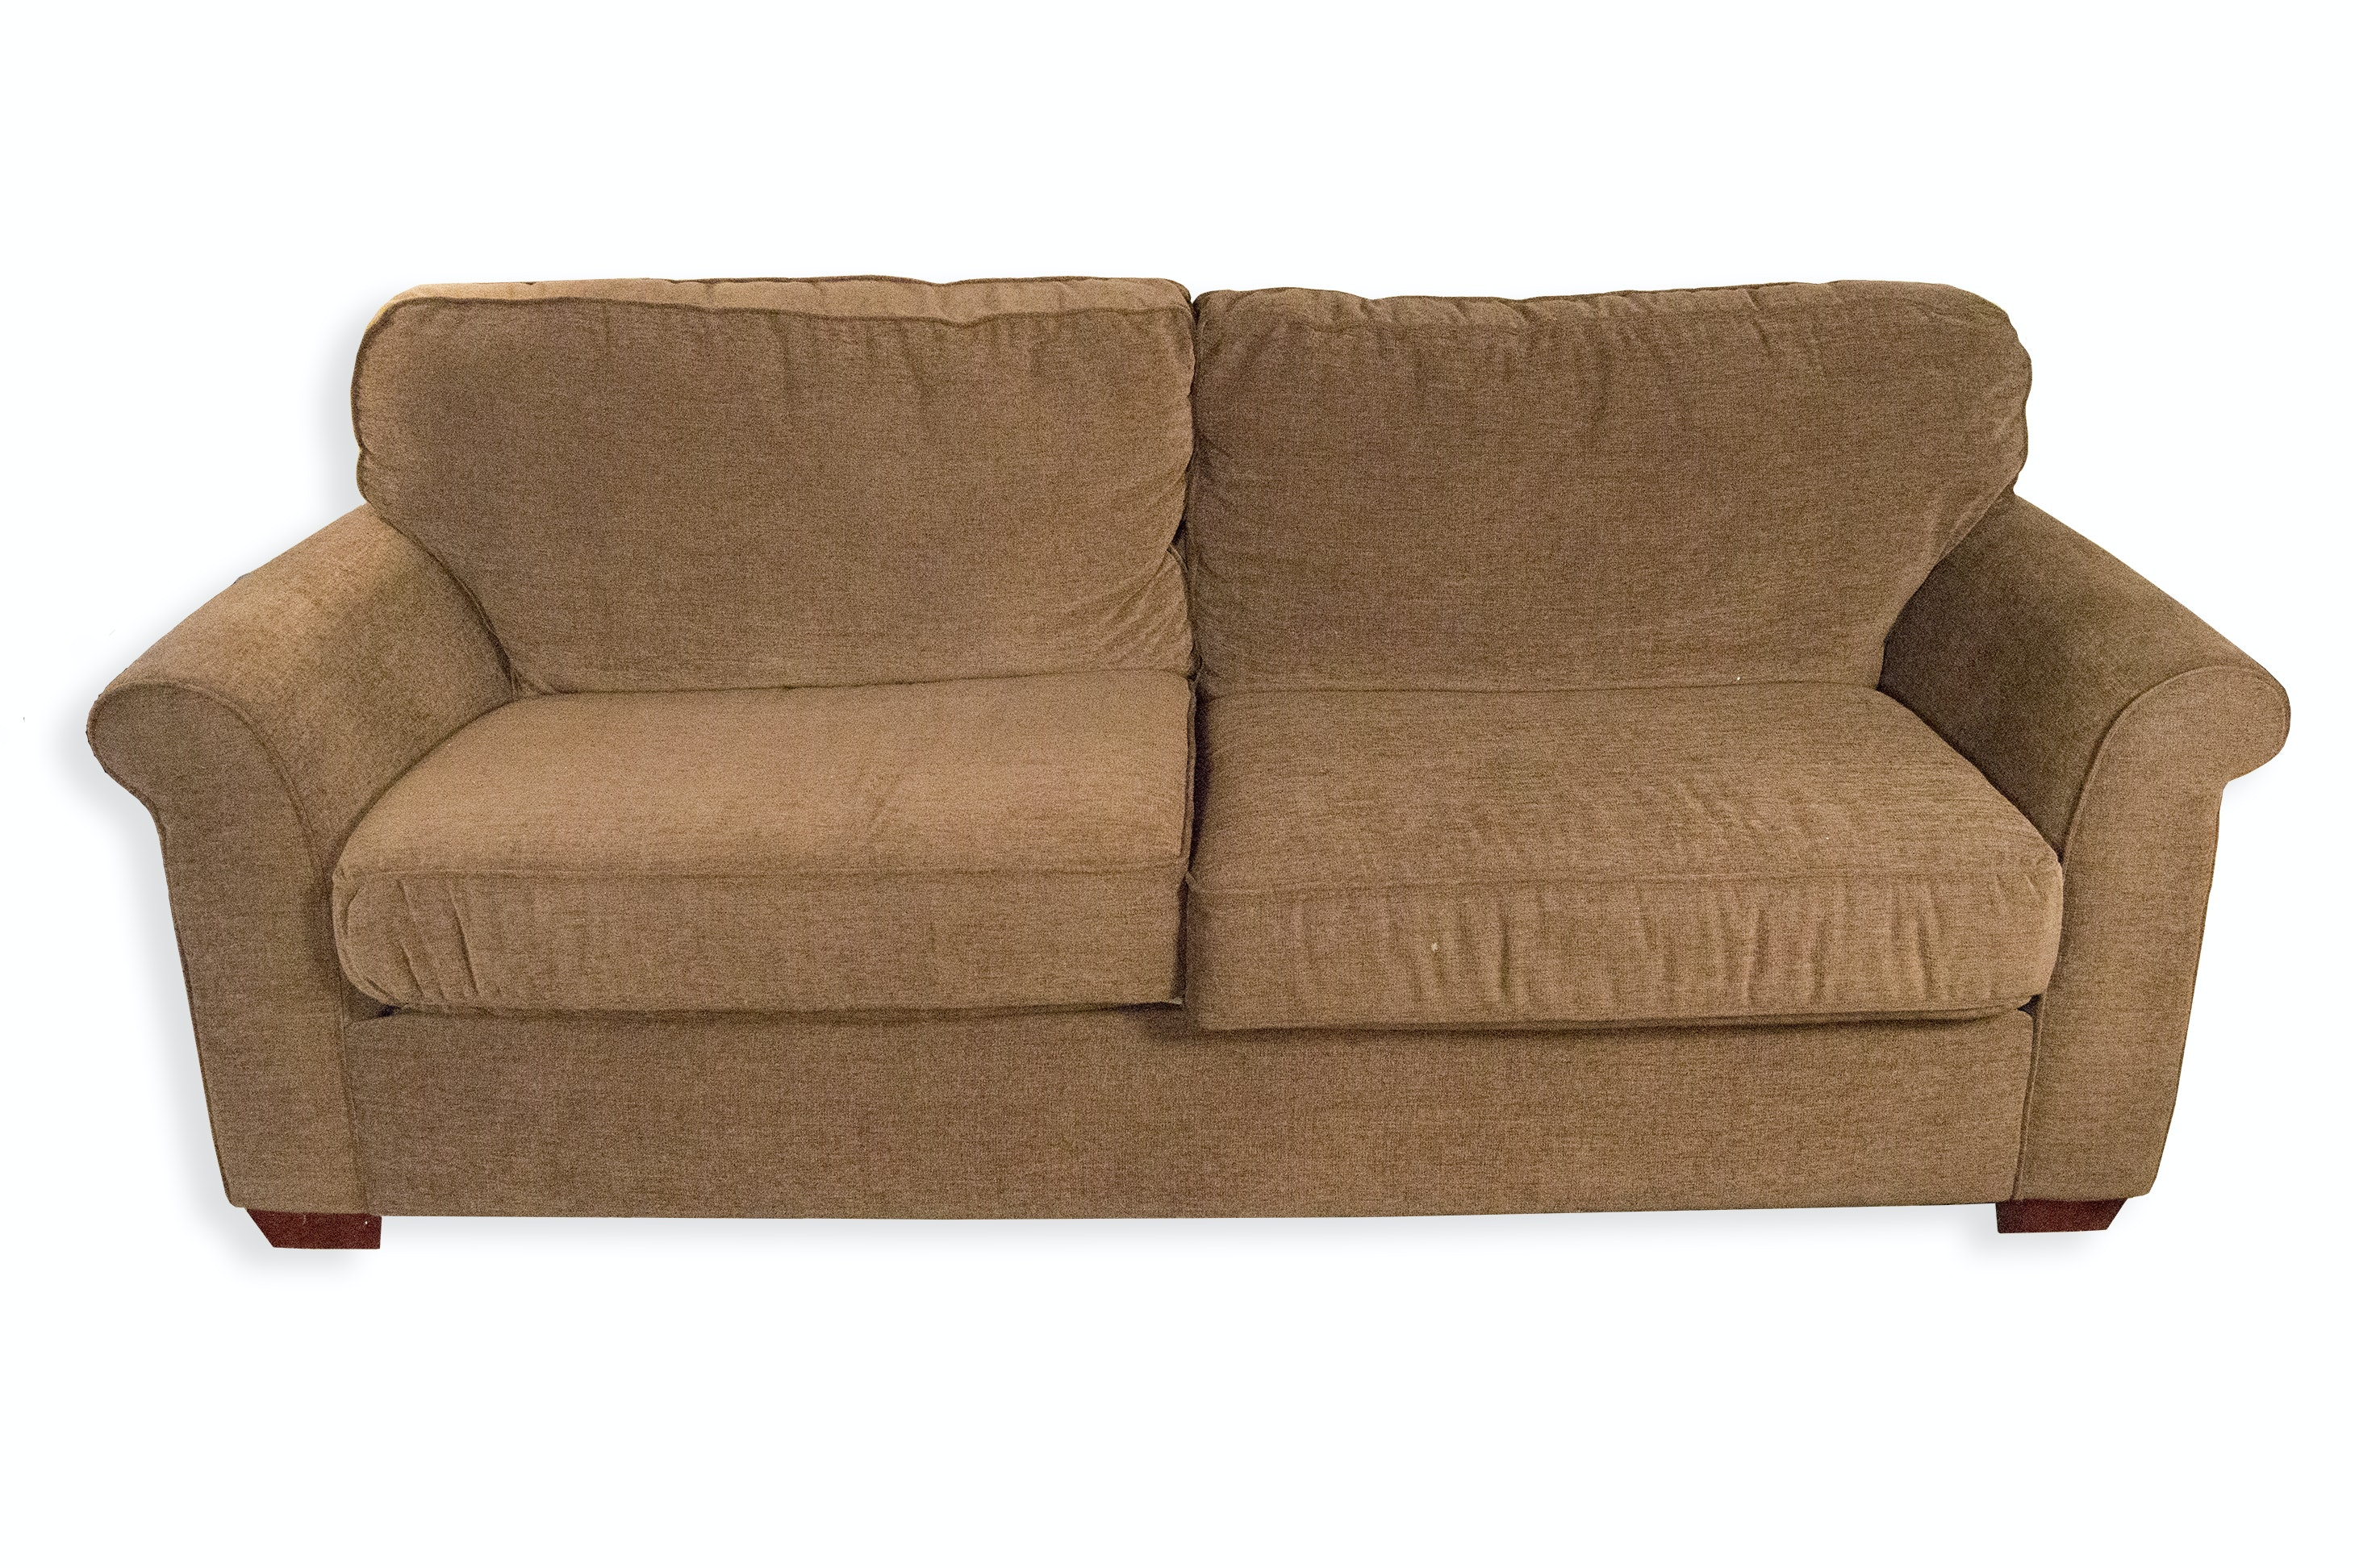 Havertys Sofas Sectional Couch Sectional Sofa Ashley Furniture